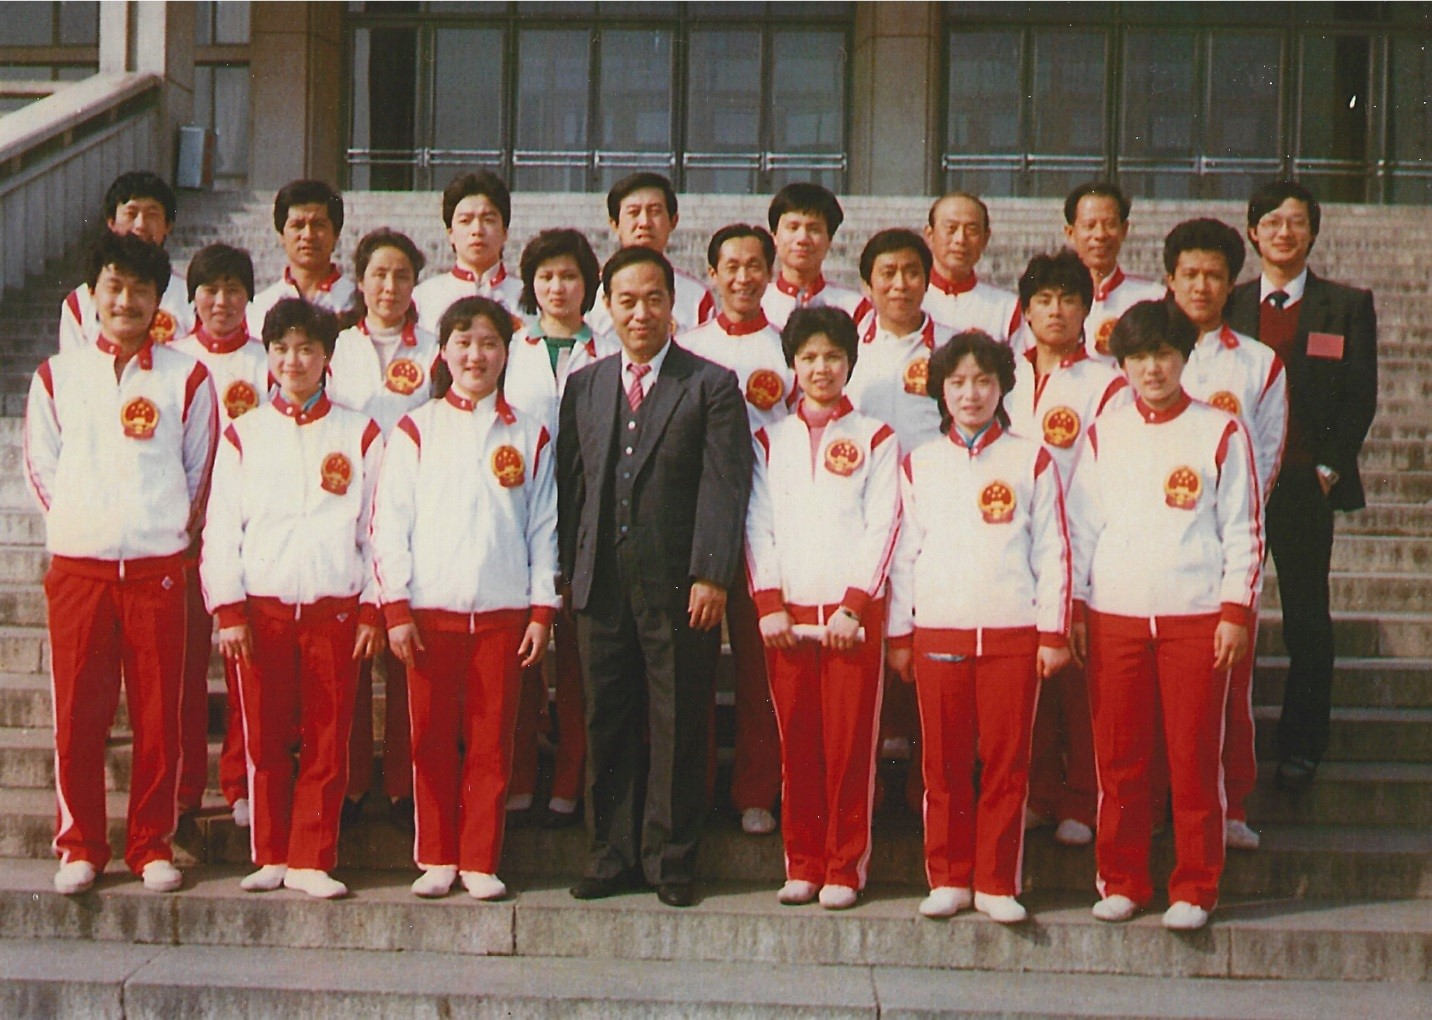 Grandmaster Cheng (front frow, third from right) with the 1988 Chinese National Tai Chi Team